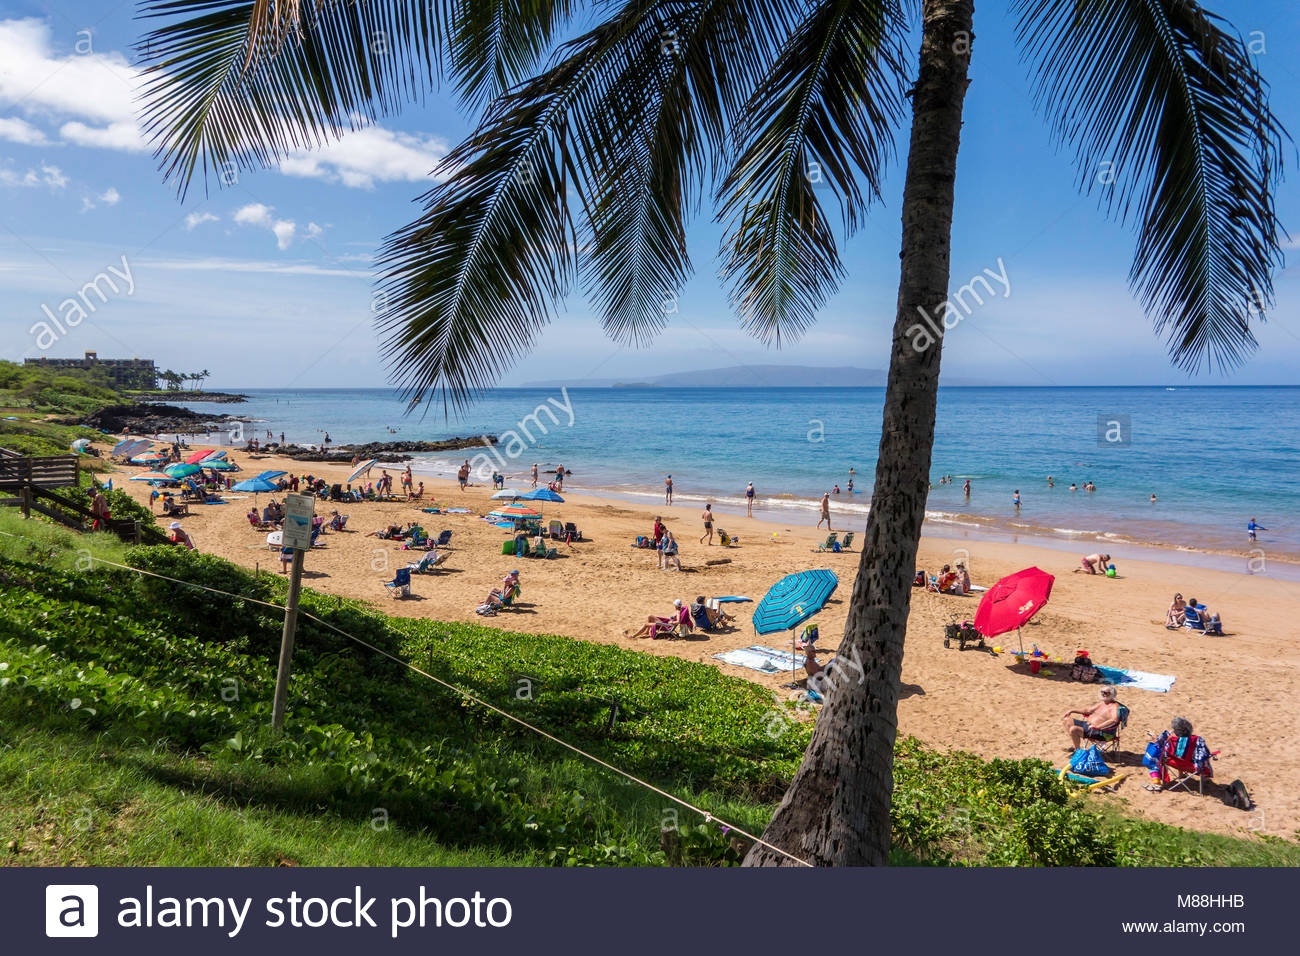 Palm tree and people on Kamaole Beach Park 3 in Kihei on the island of Maui in the state of Hawaii USA - Stock Image